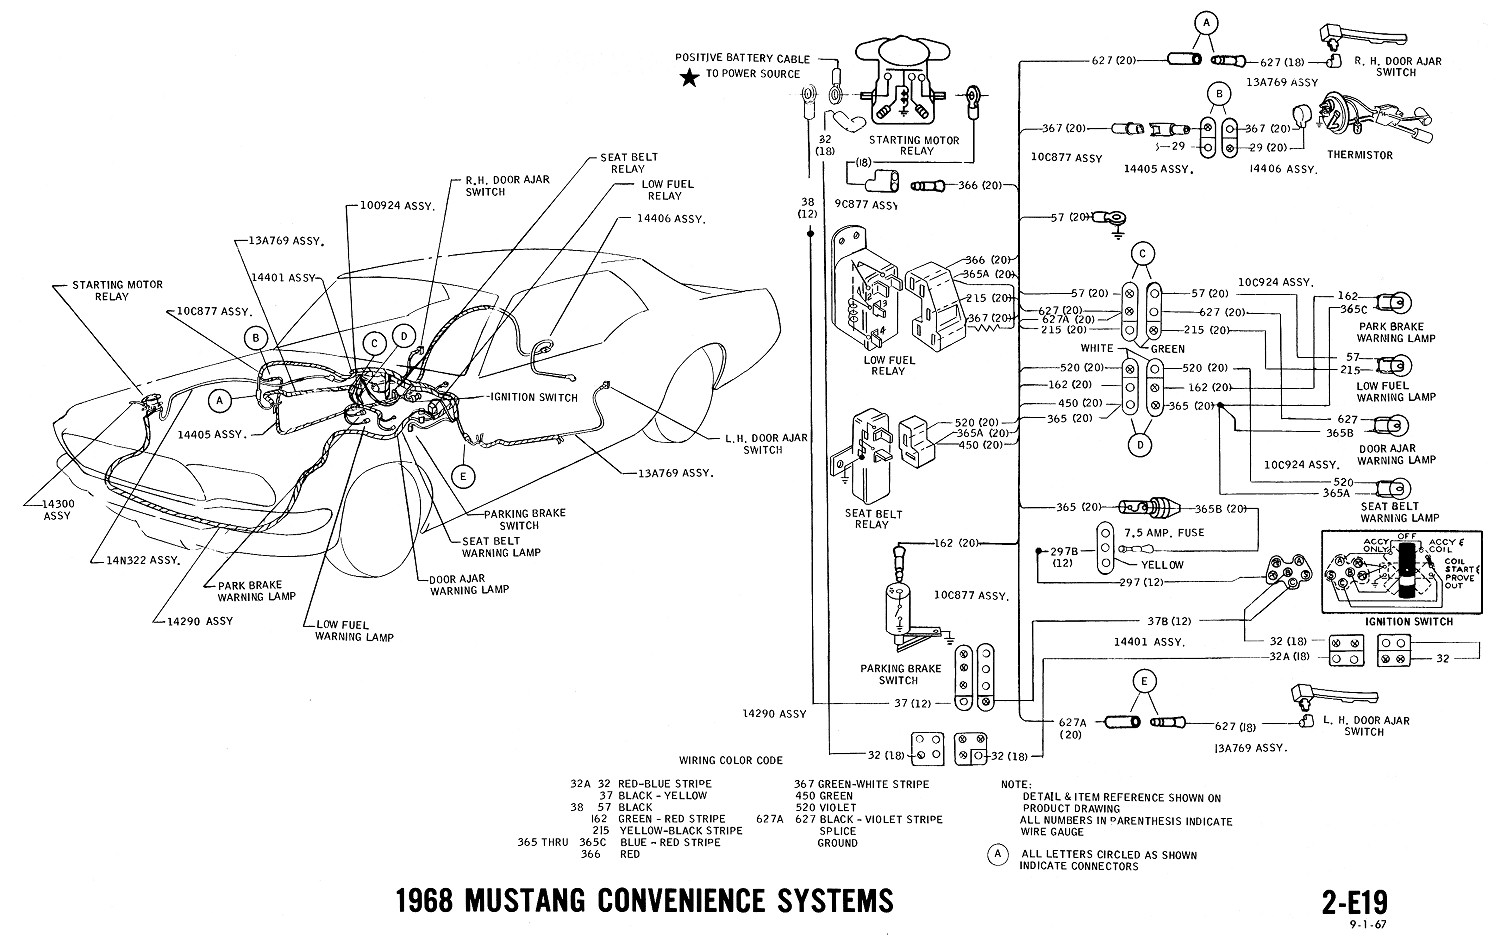 1968 mustang alternator wiring diagram trusted schematics diagram 1972 chevelle horn relay wiring diagram 1968 mustang wiring diagrams evolving software chevelle wiper switch diagram 1968 mustang alternator wiring diagram